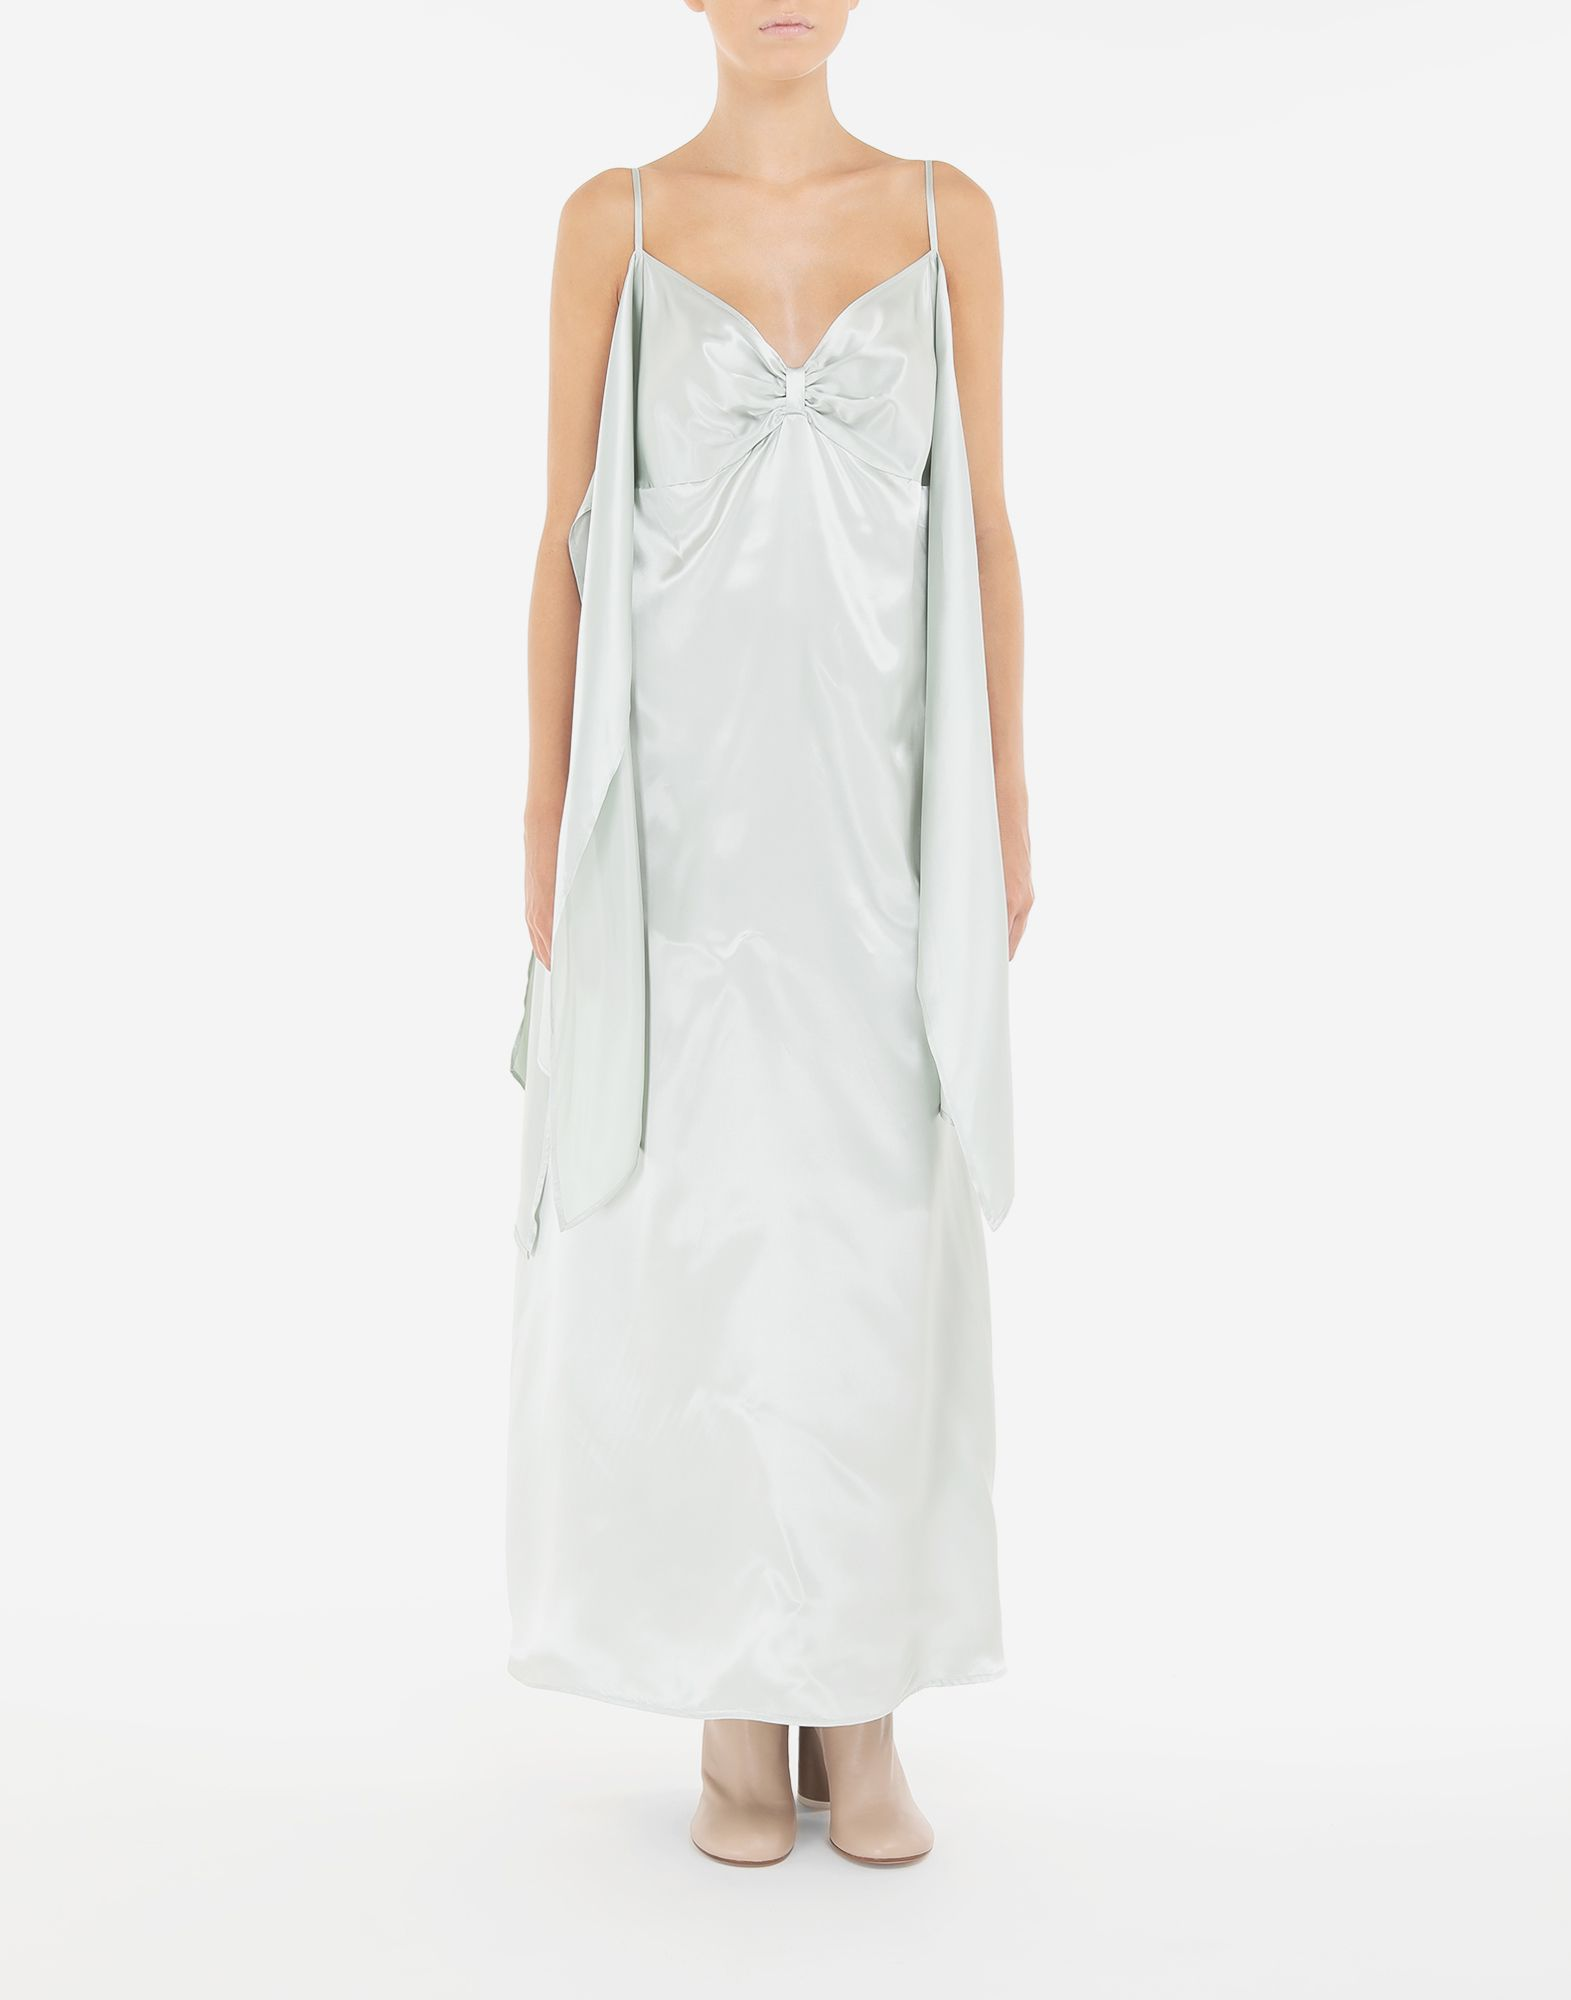 MM6 MAISON MARGIELA Multi-wear satin dress Dress Woman d